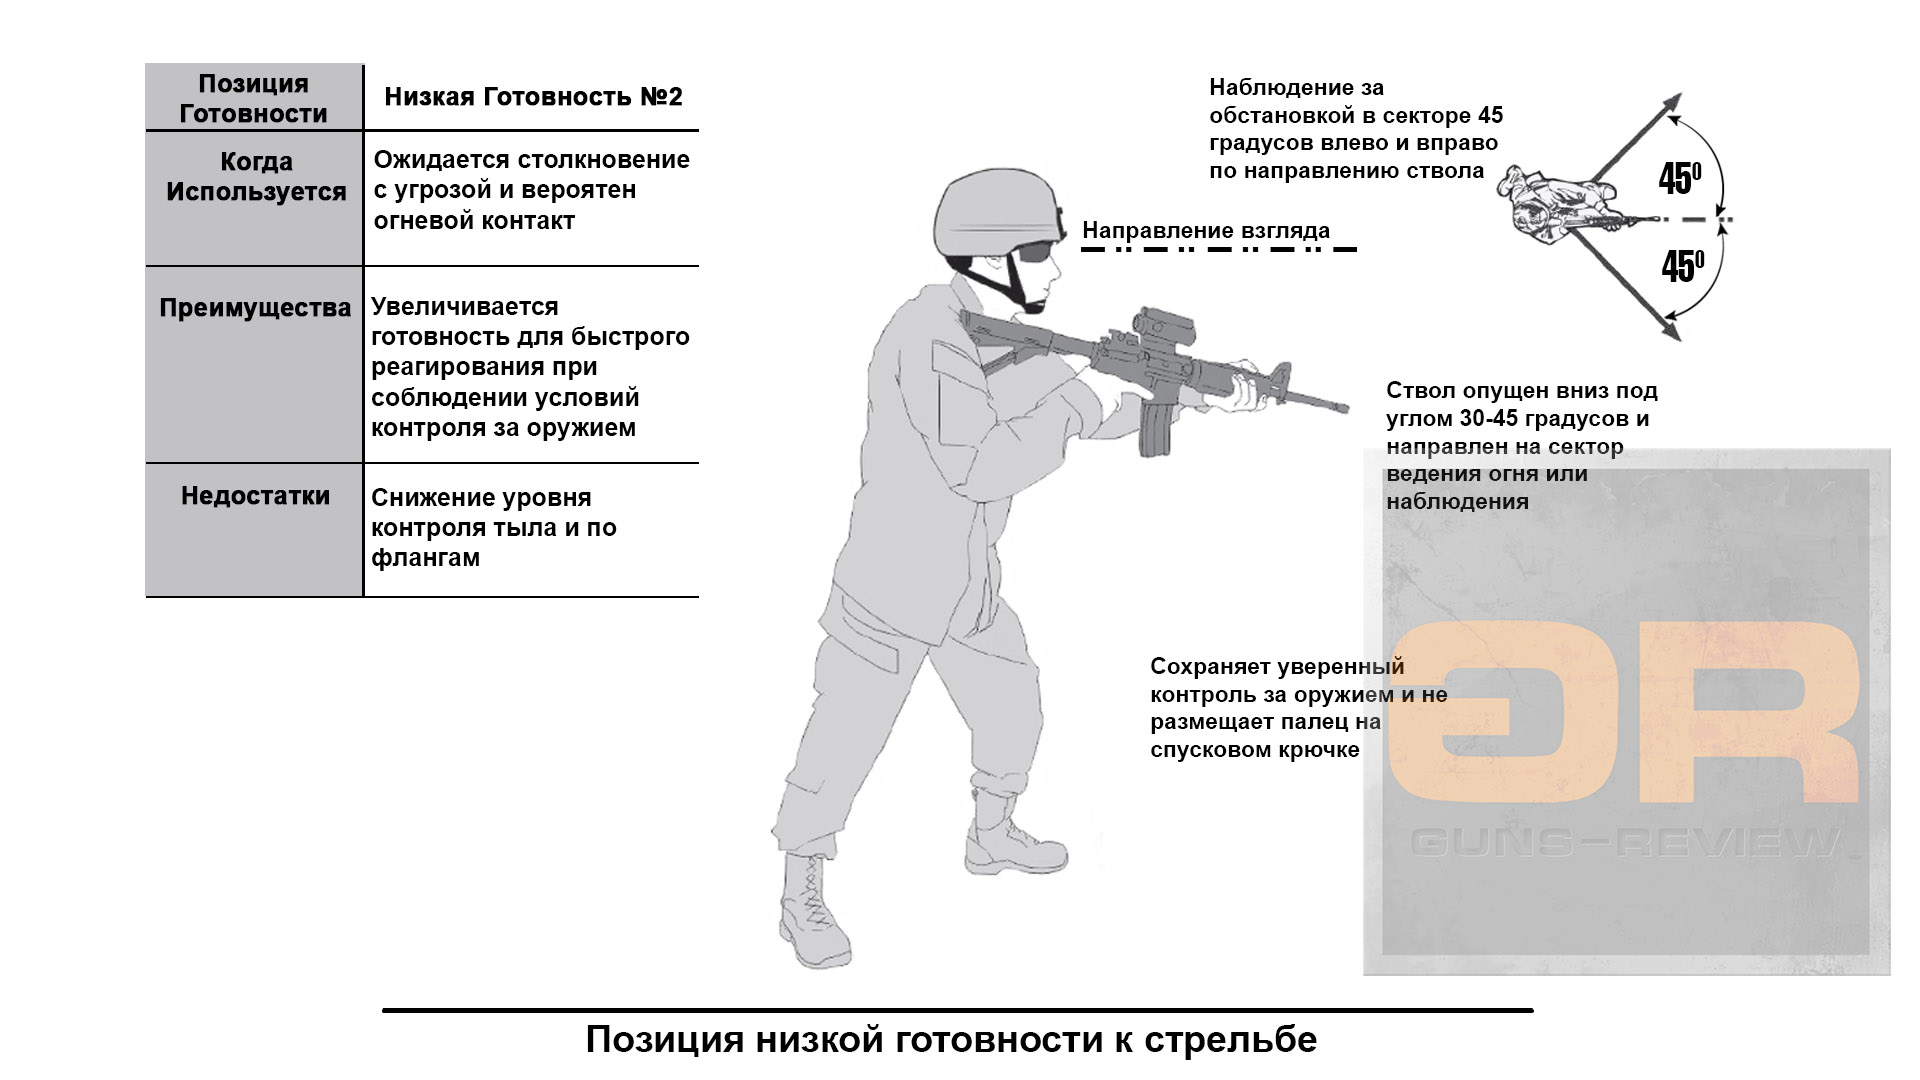 Shooting Position - Low Ready; Позиции готовност